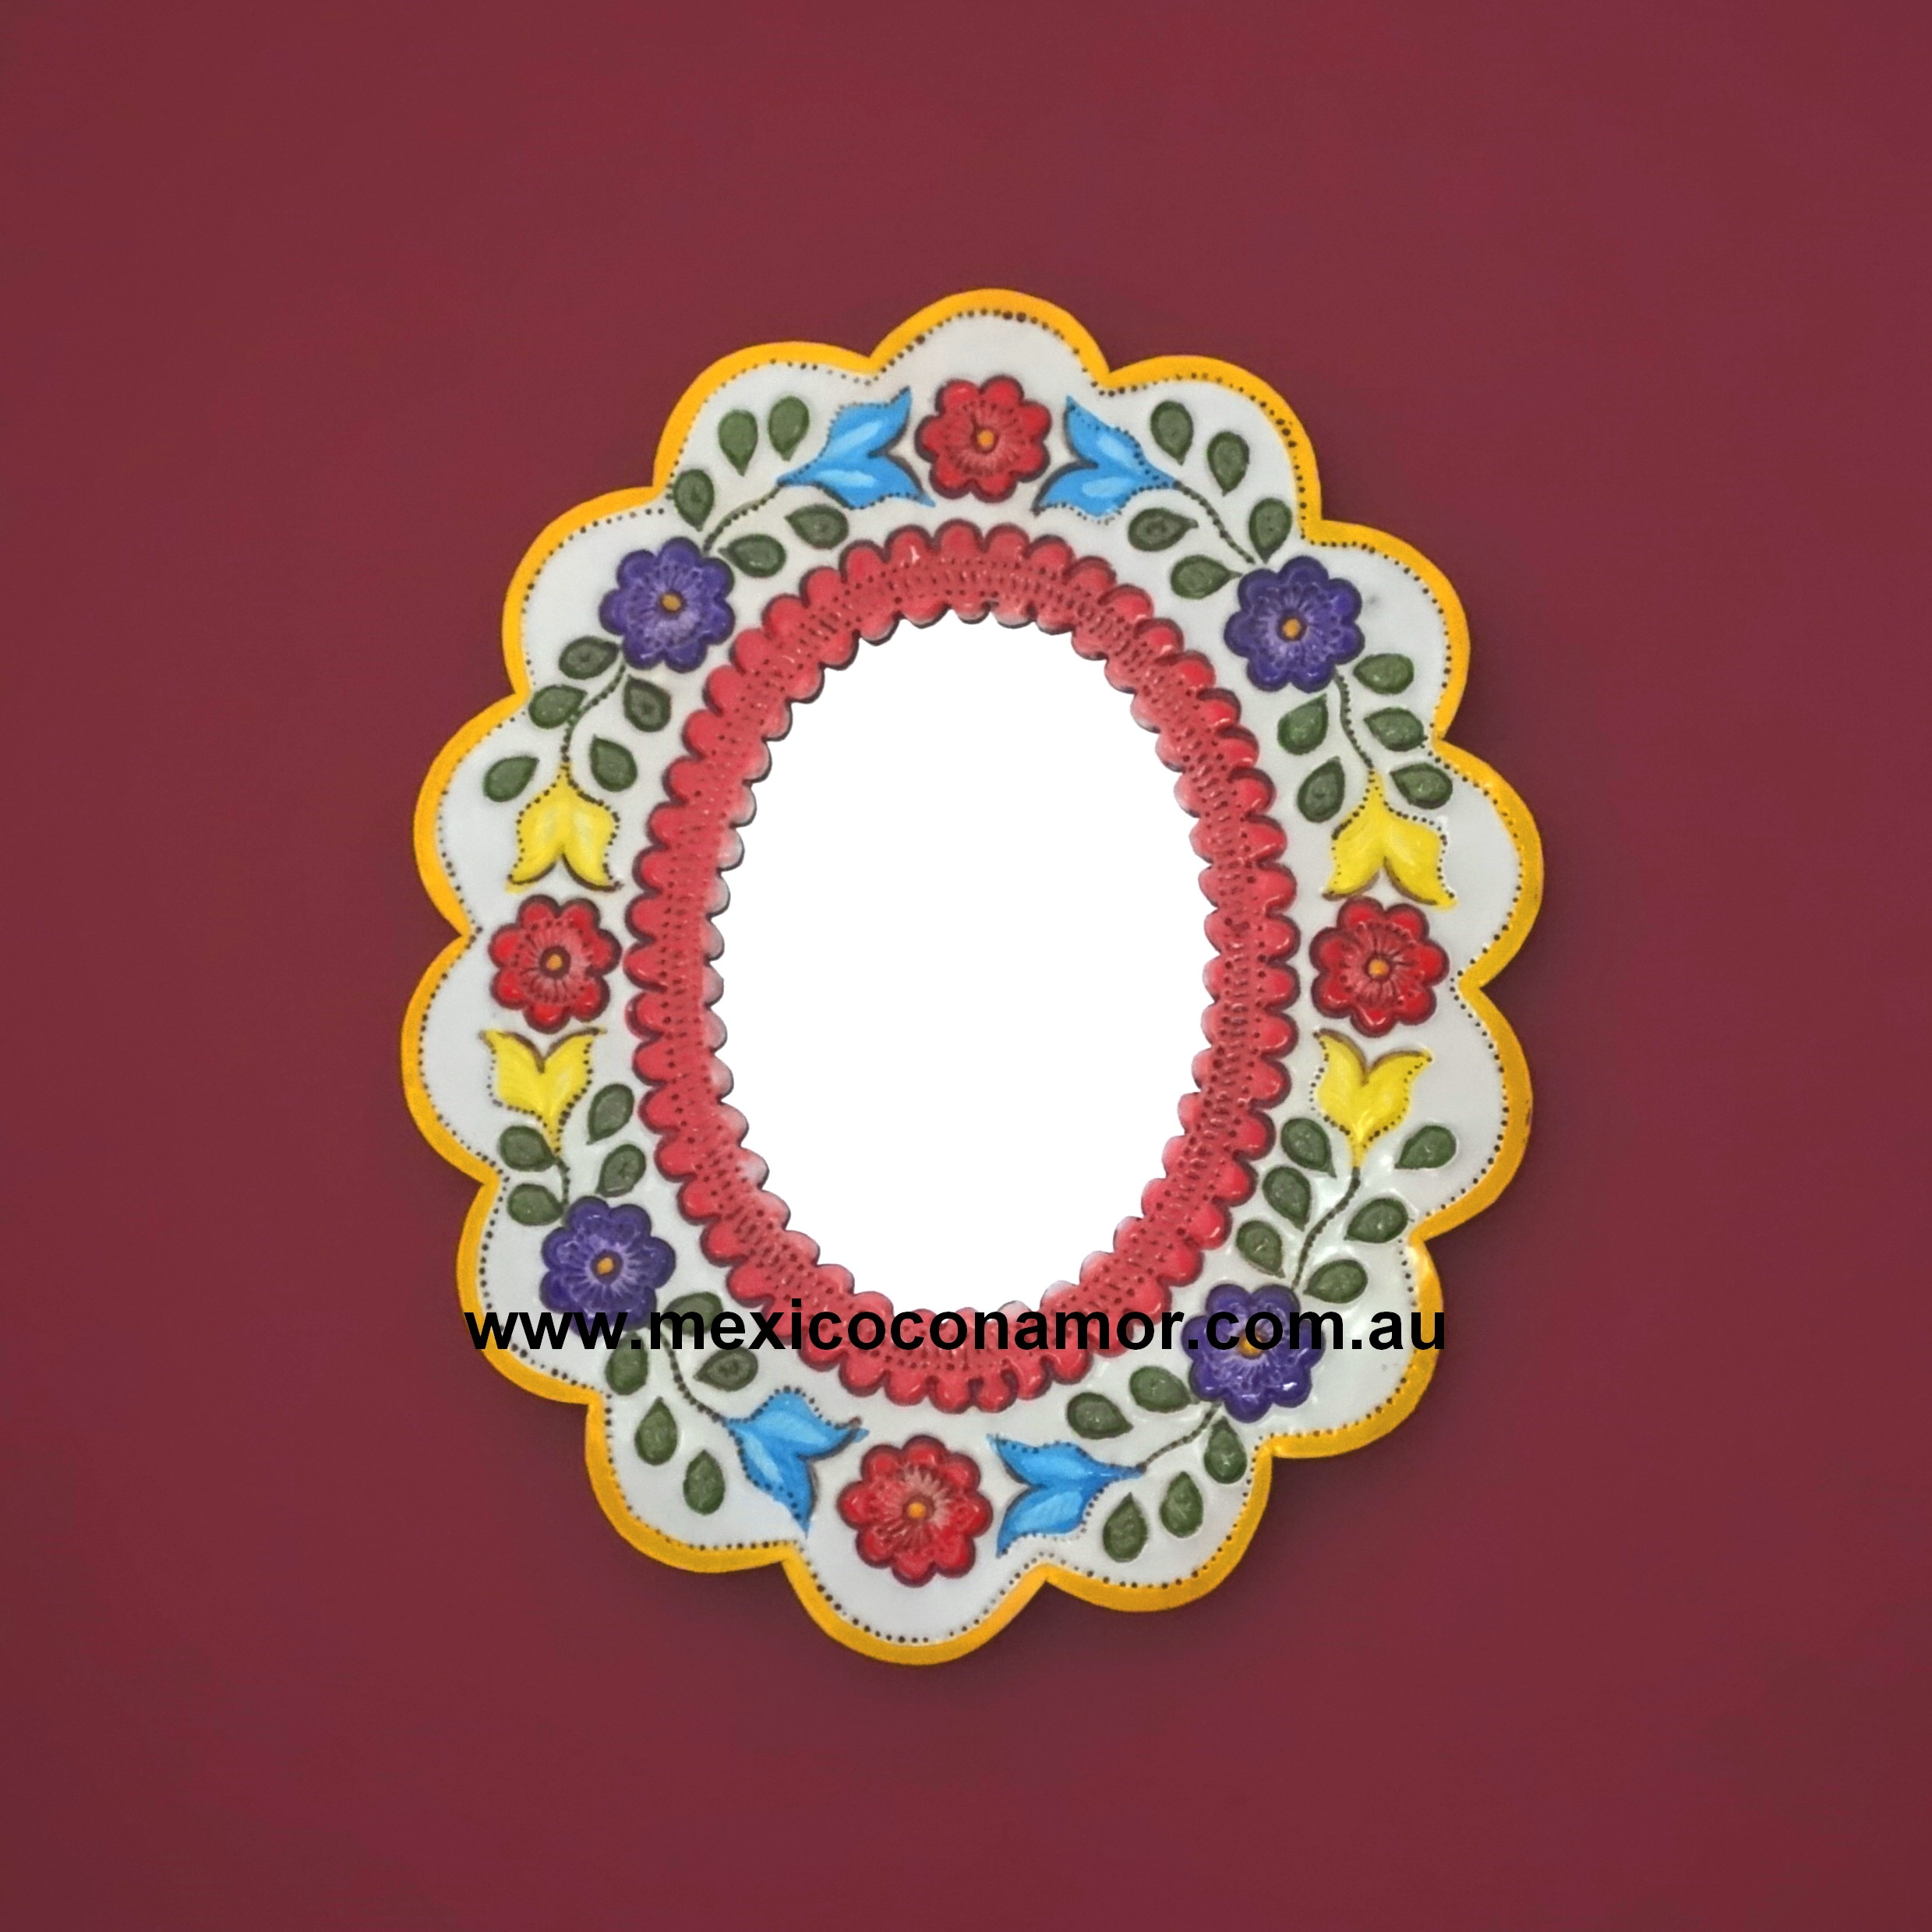 Oval Pressed Tin Mirror Coloured Mexico Con Amor Within Pressed Tin Mirror (Image 7 of 15)